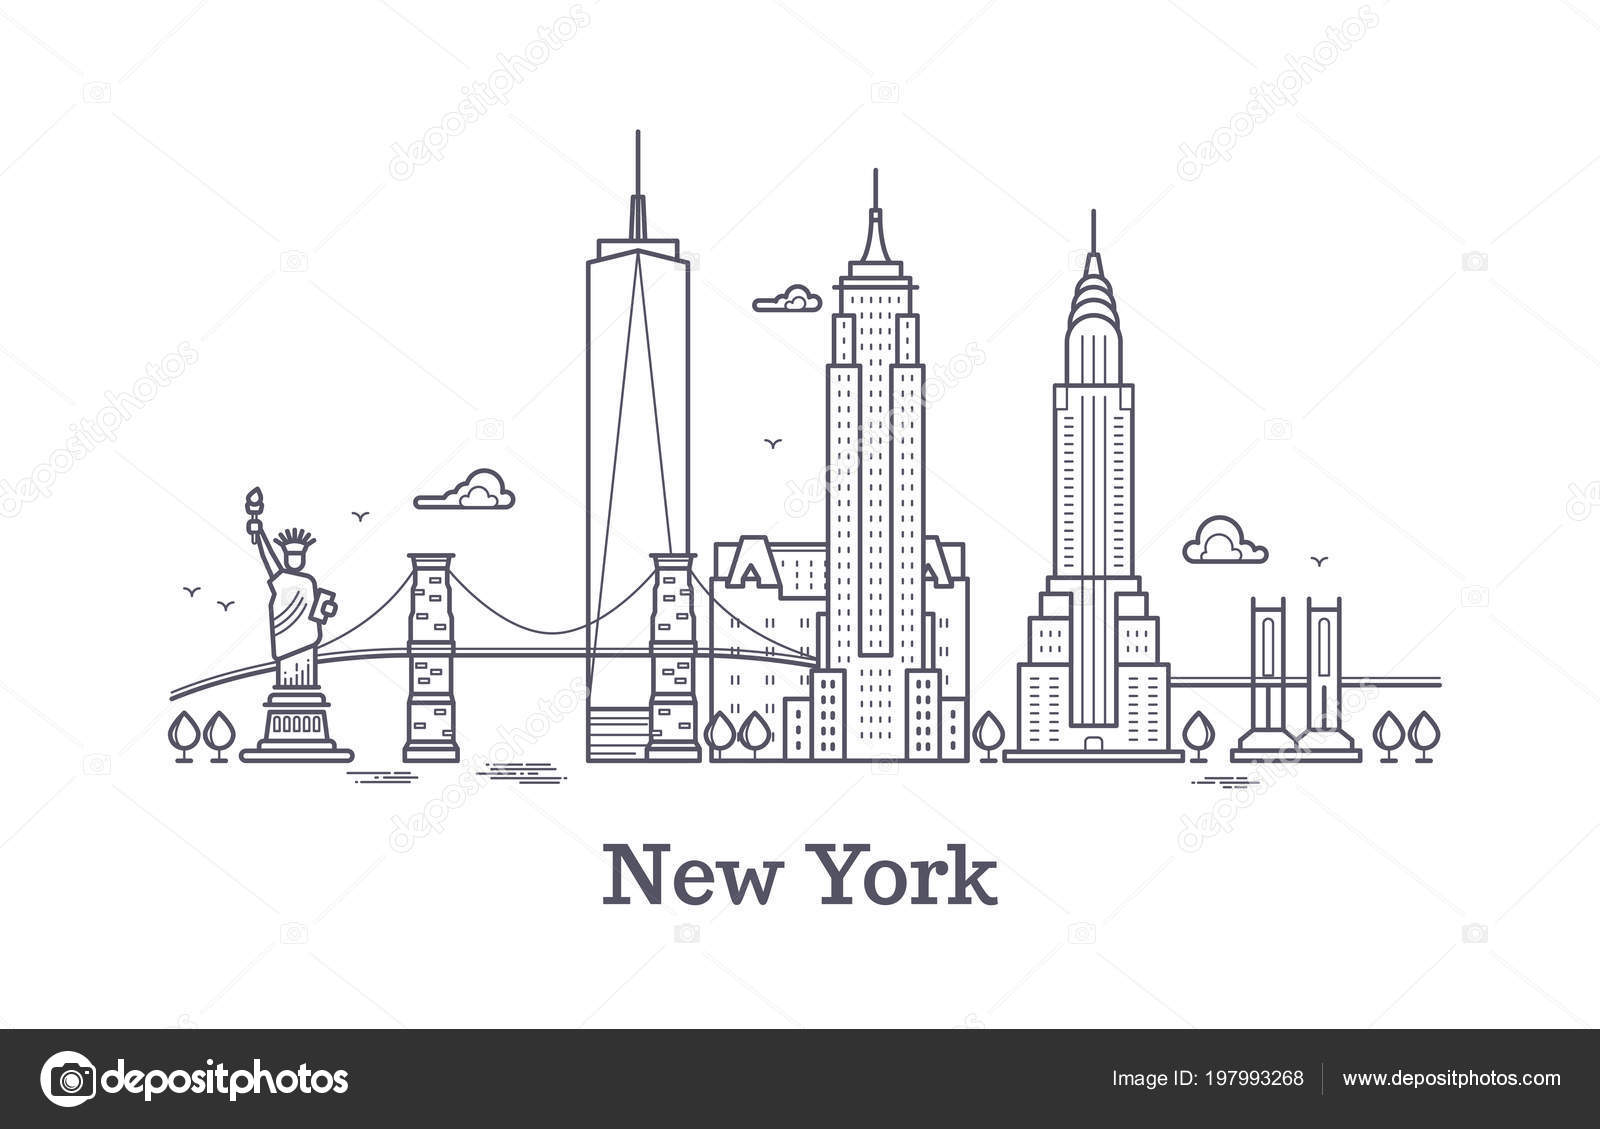 New York City Line Outline Wiring Diagrams Steam Mop Diagram And Parts List For Bissell Wetcarpetcleanerparts Skyline Nyc Silhouette Usa Tourist Rh Depositphotos Com